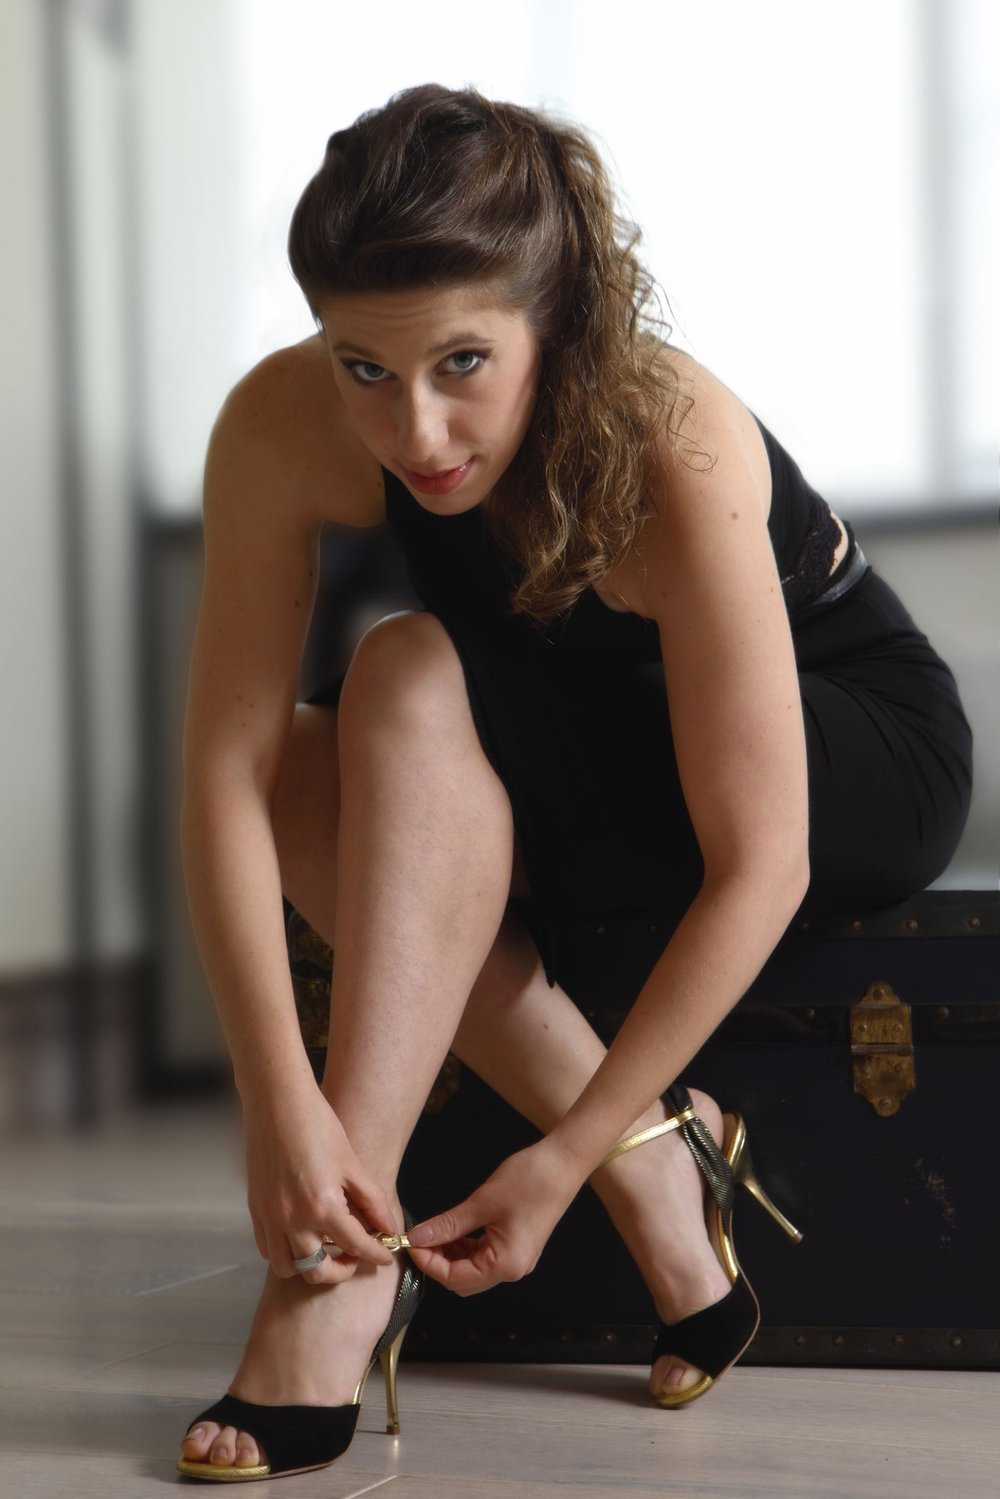 Stefania Colina putting on shoes (Al Verla Pasar) - click to shop